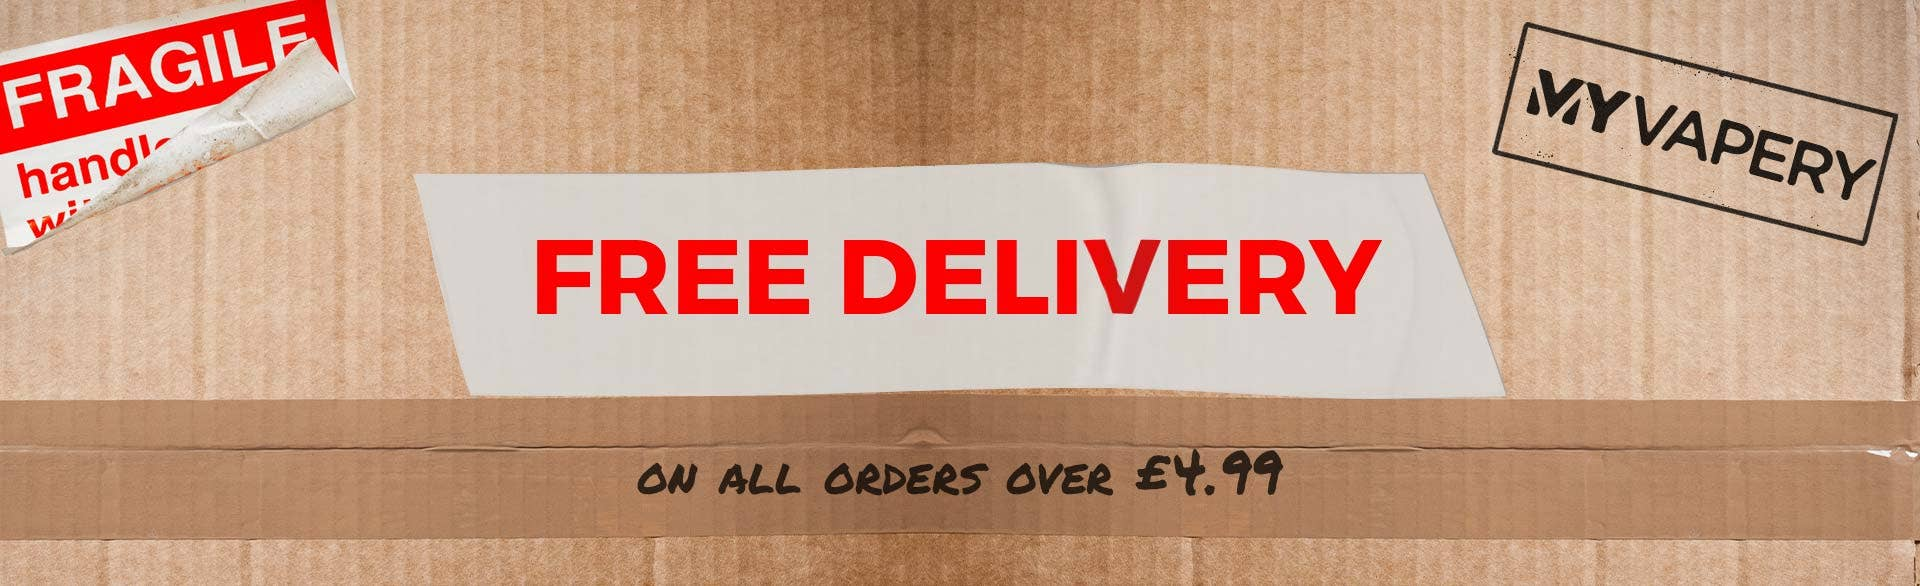 Free Delivery for all orders £4.99